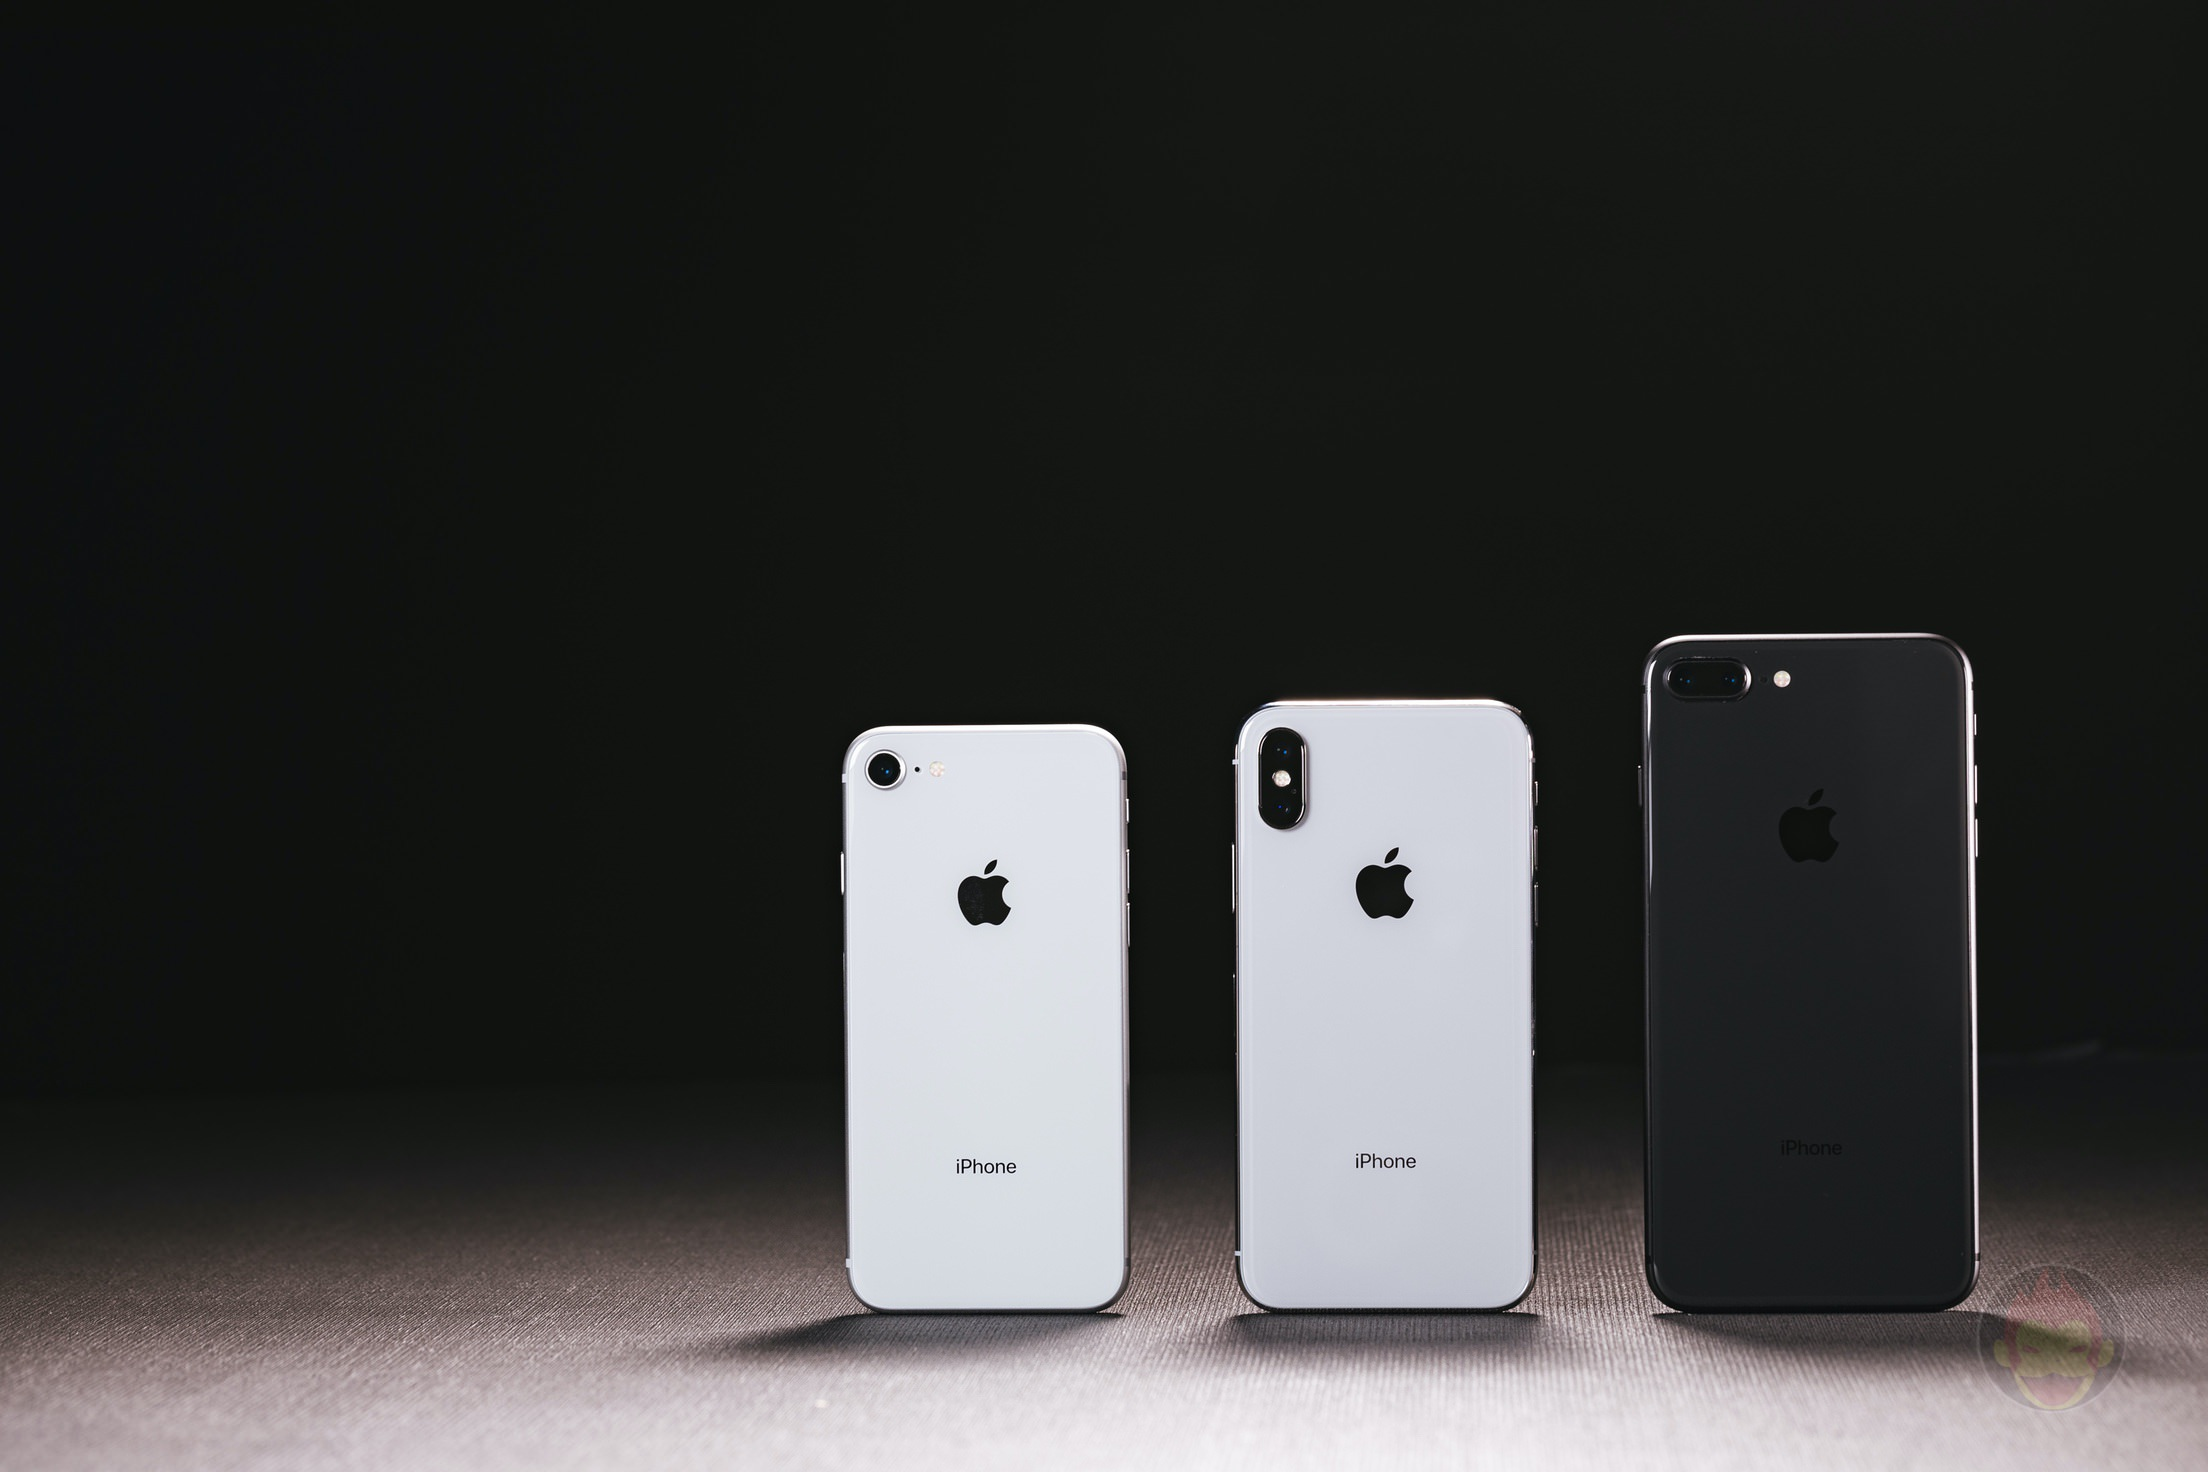 iPhone-X-Silver-Review-26.jpg